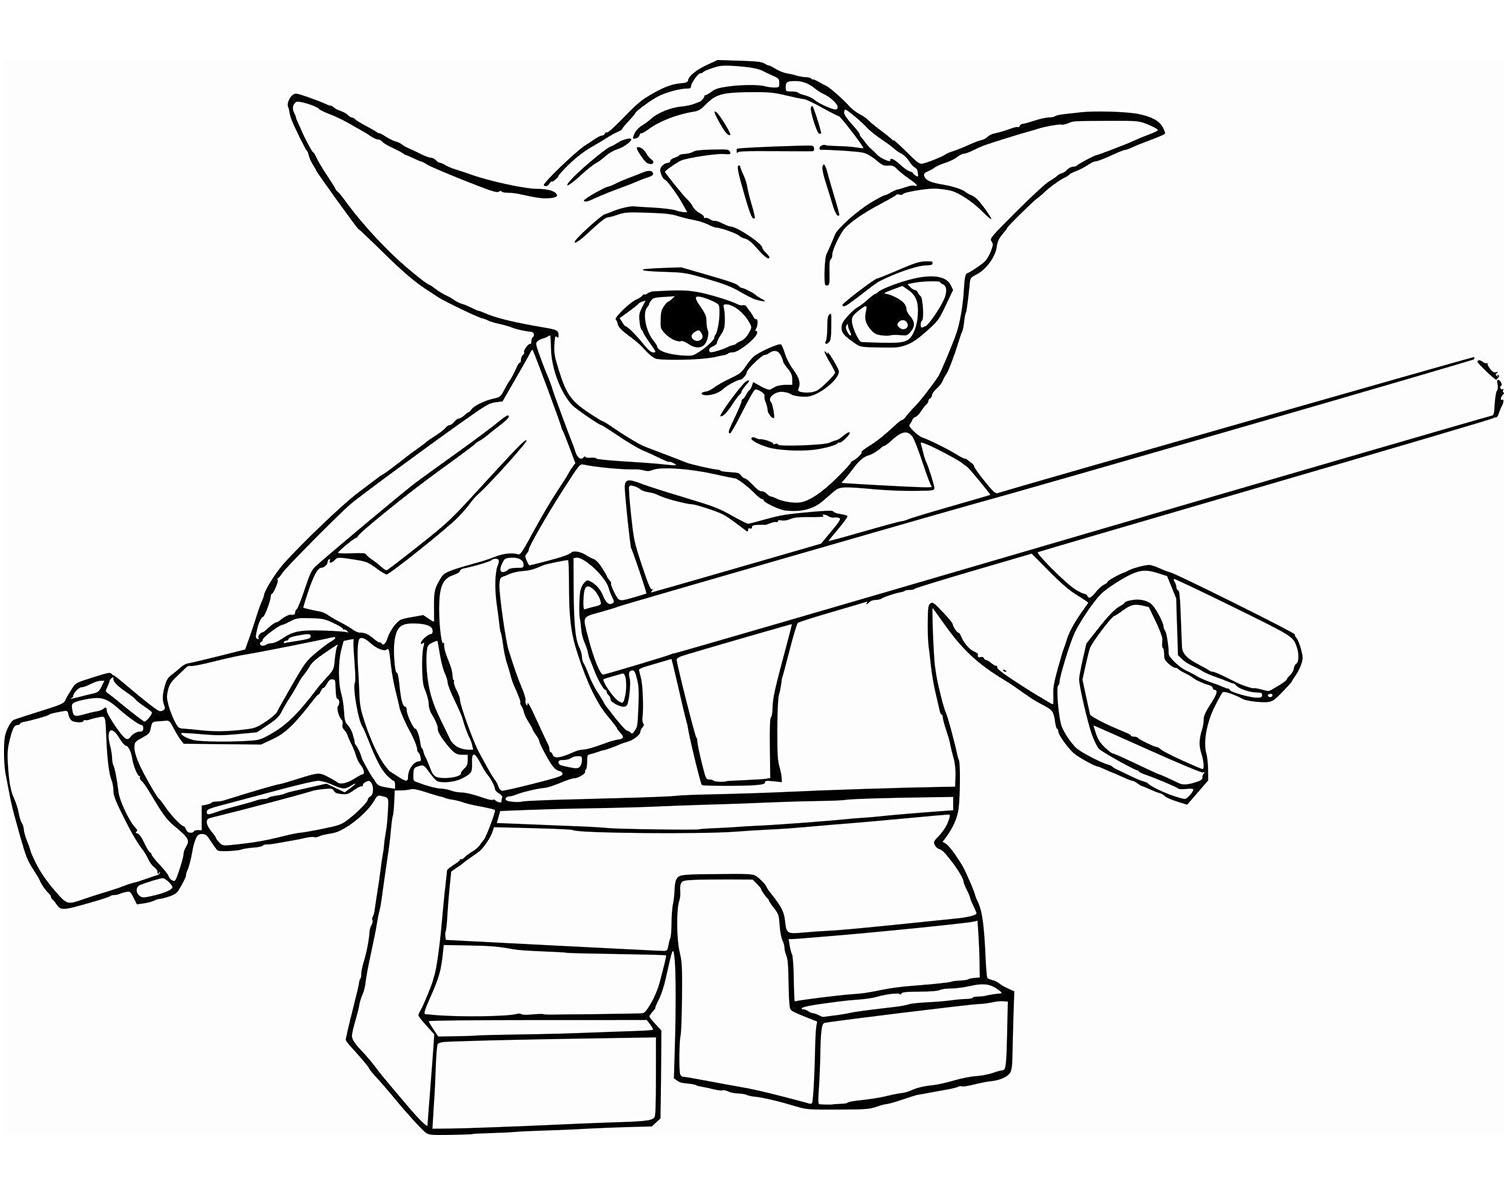 Simple Star Wars coloring page to print and color for free